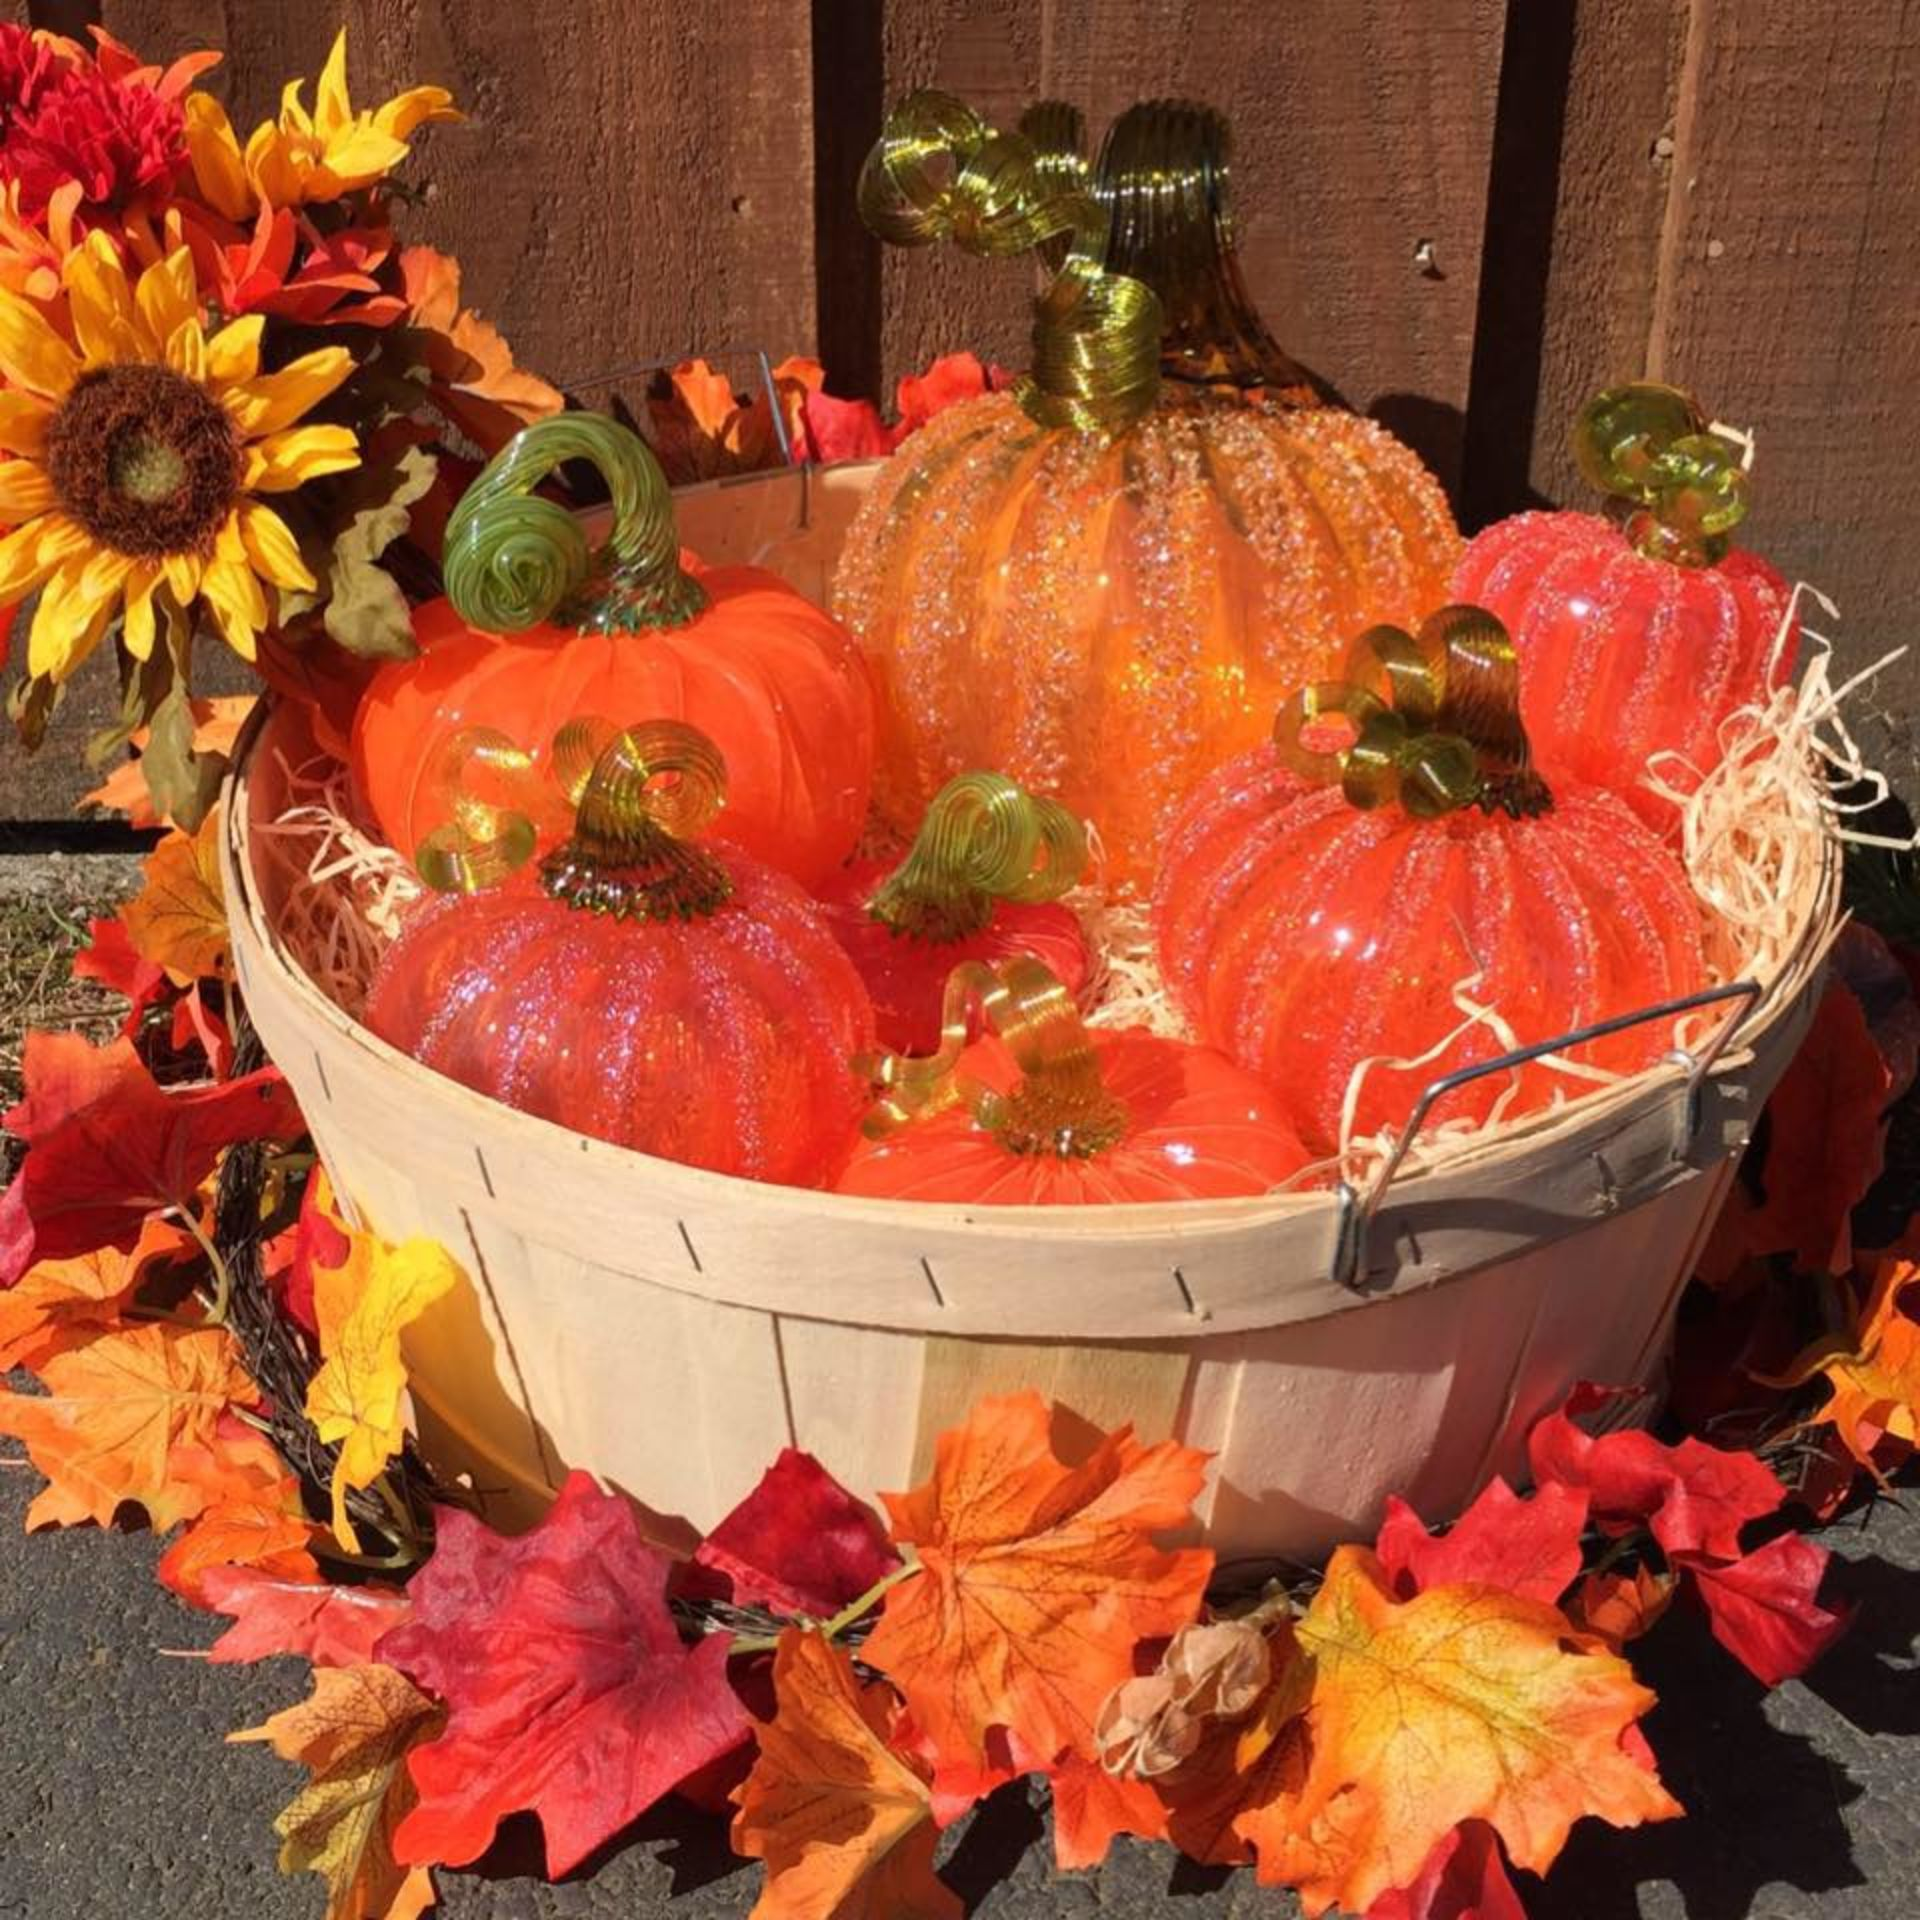 Enjoy Autumn in Gig Harbor this Weekend!